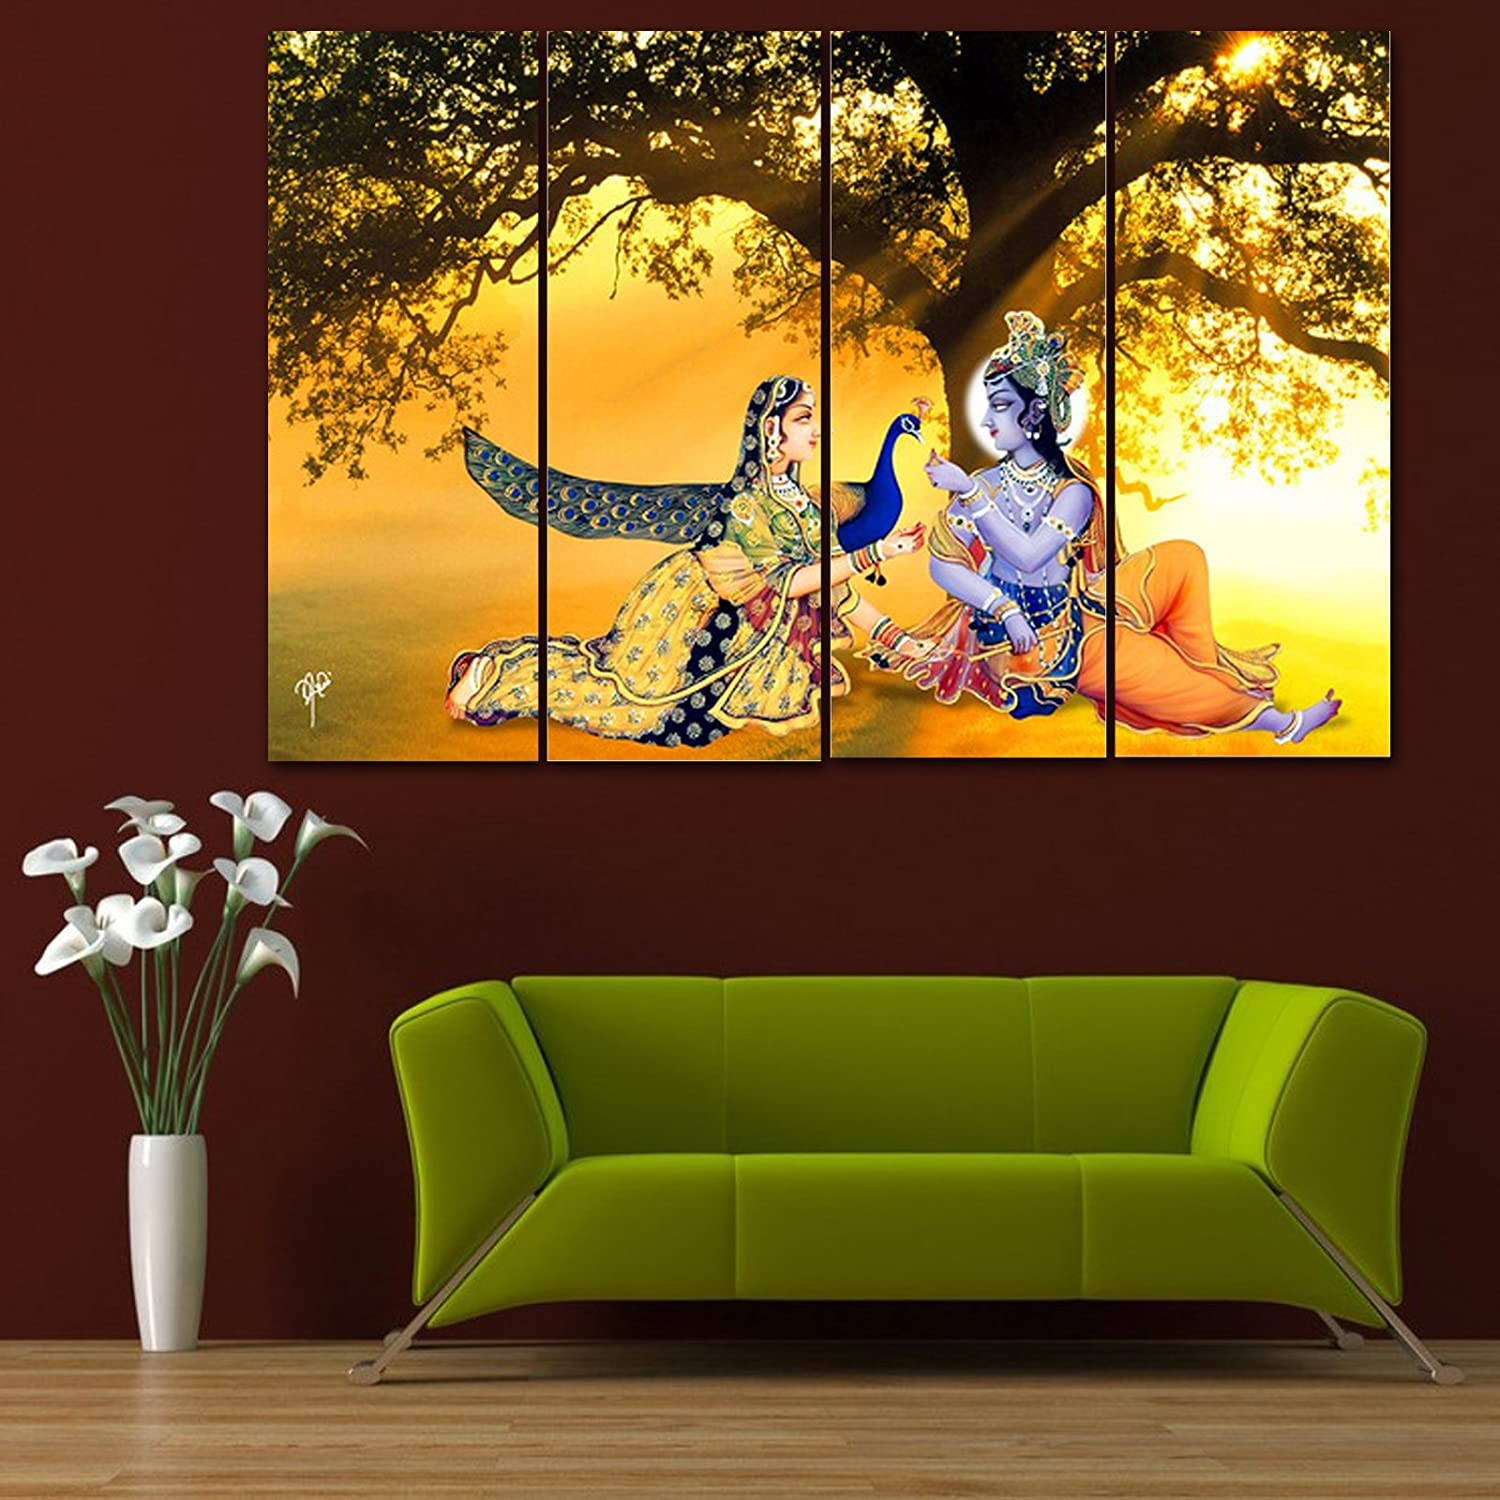 Wall stickers radha krishna - Ray D Cor S Multiple Sparkling Radha Krishna Wall Painting 4 Frames 61x91 5 Cm Wall Decor Wall Decals Wall Hangings Home Decor Gift Items